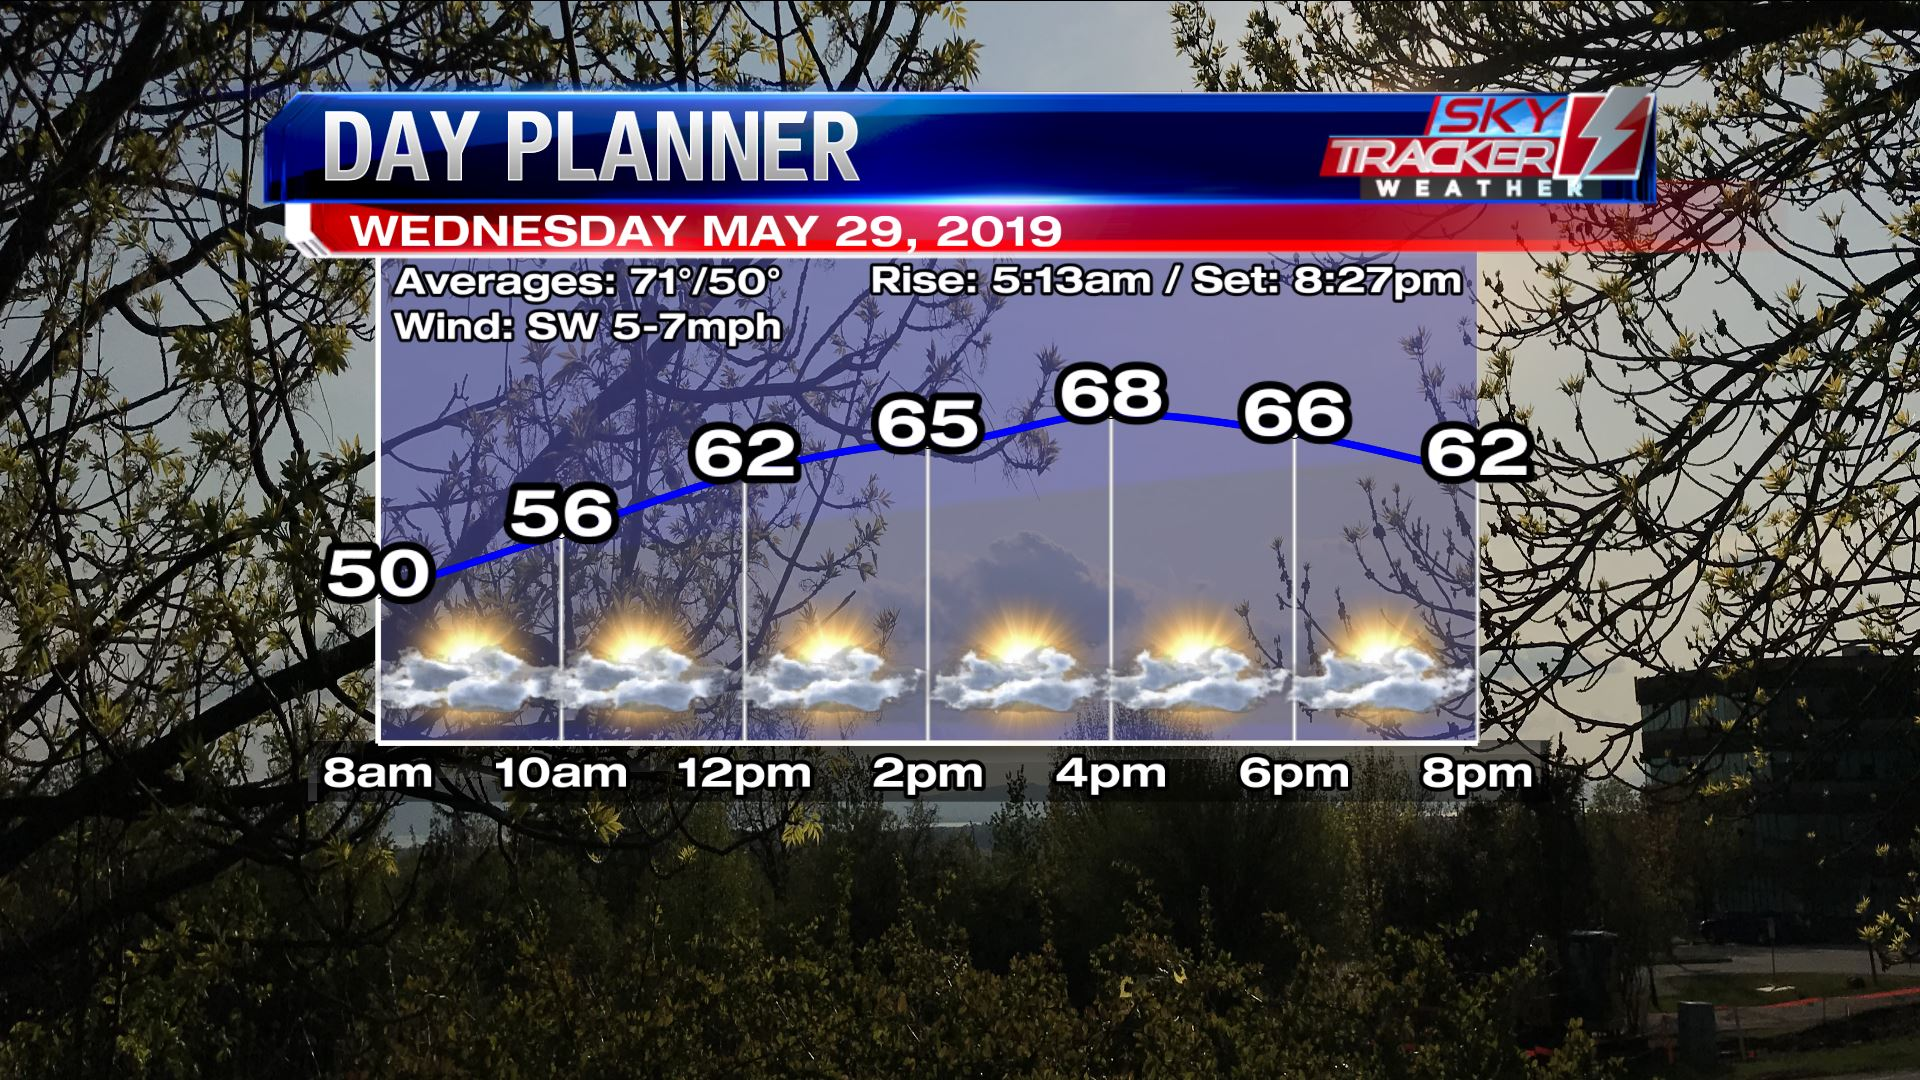 Planner for Wednesday May 29 2019